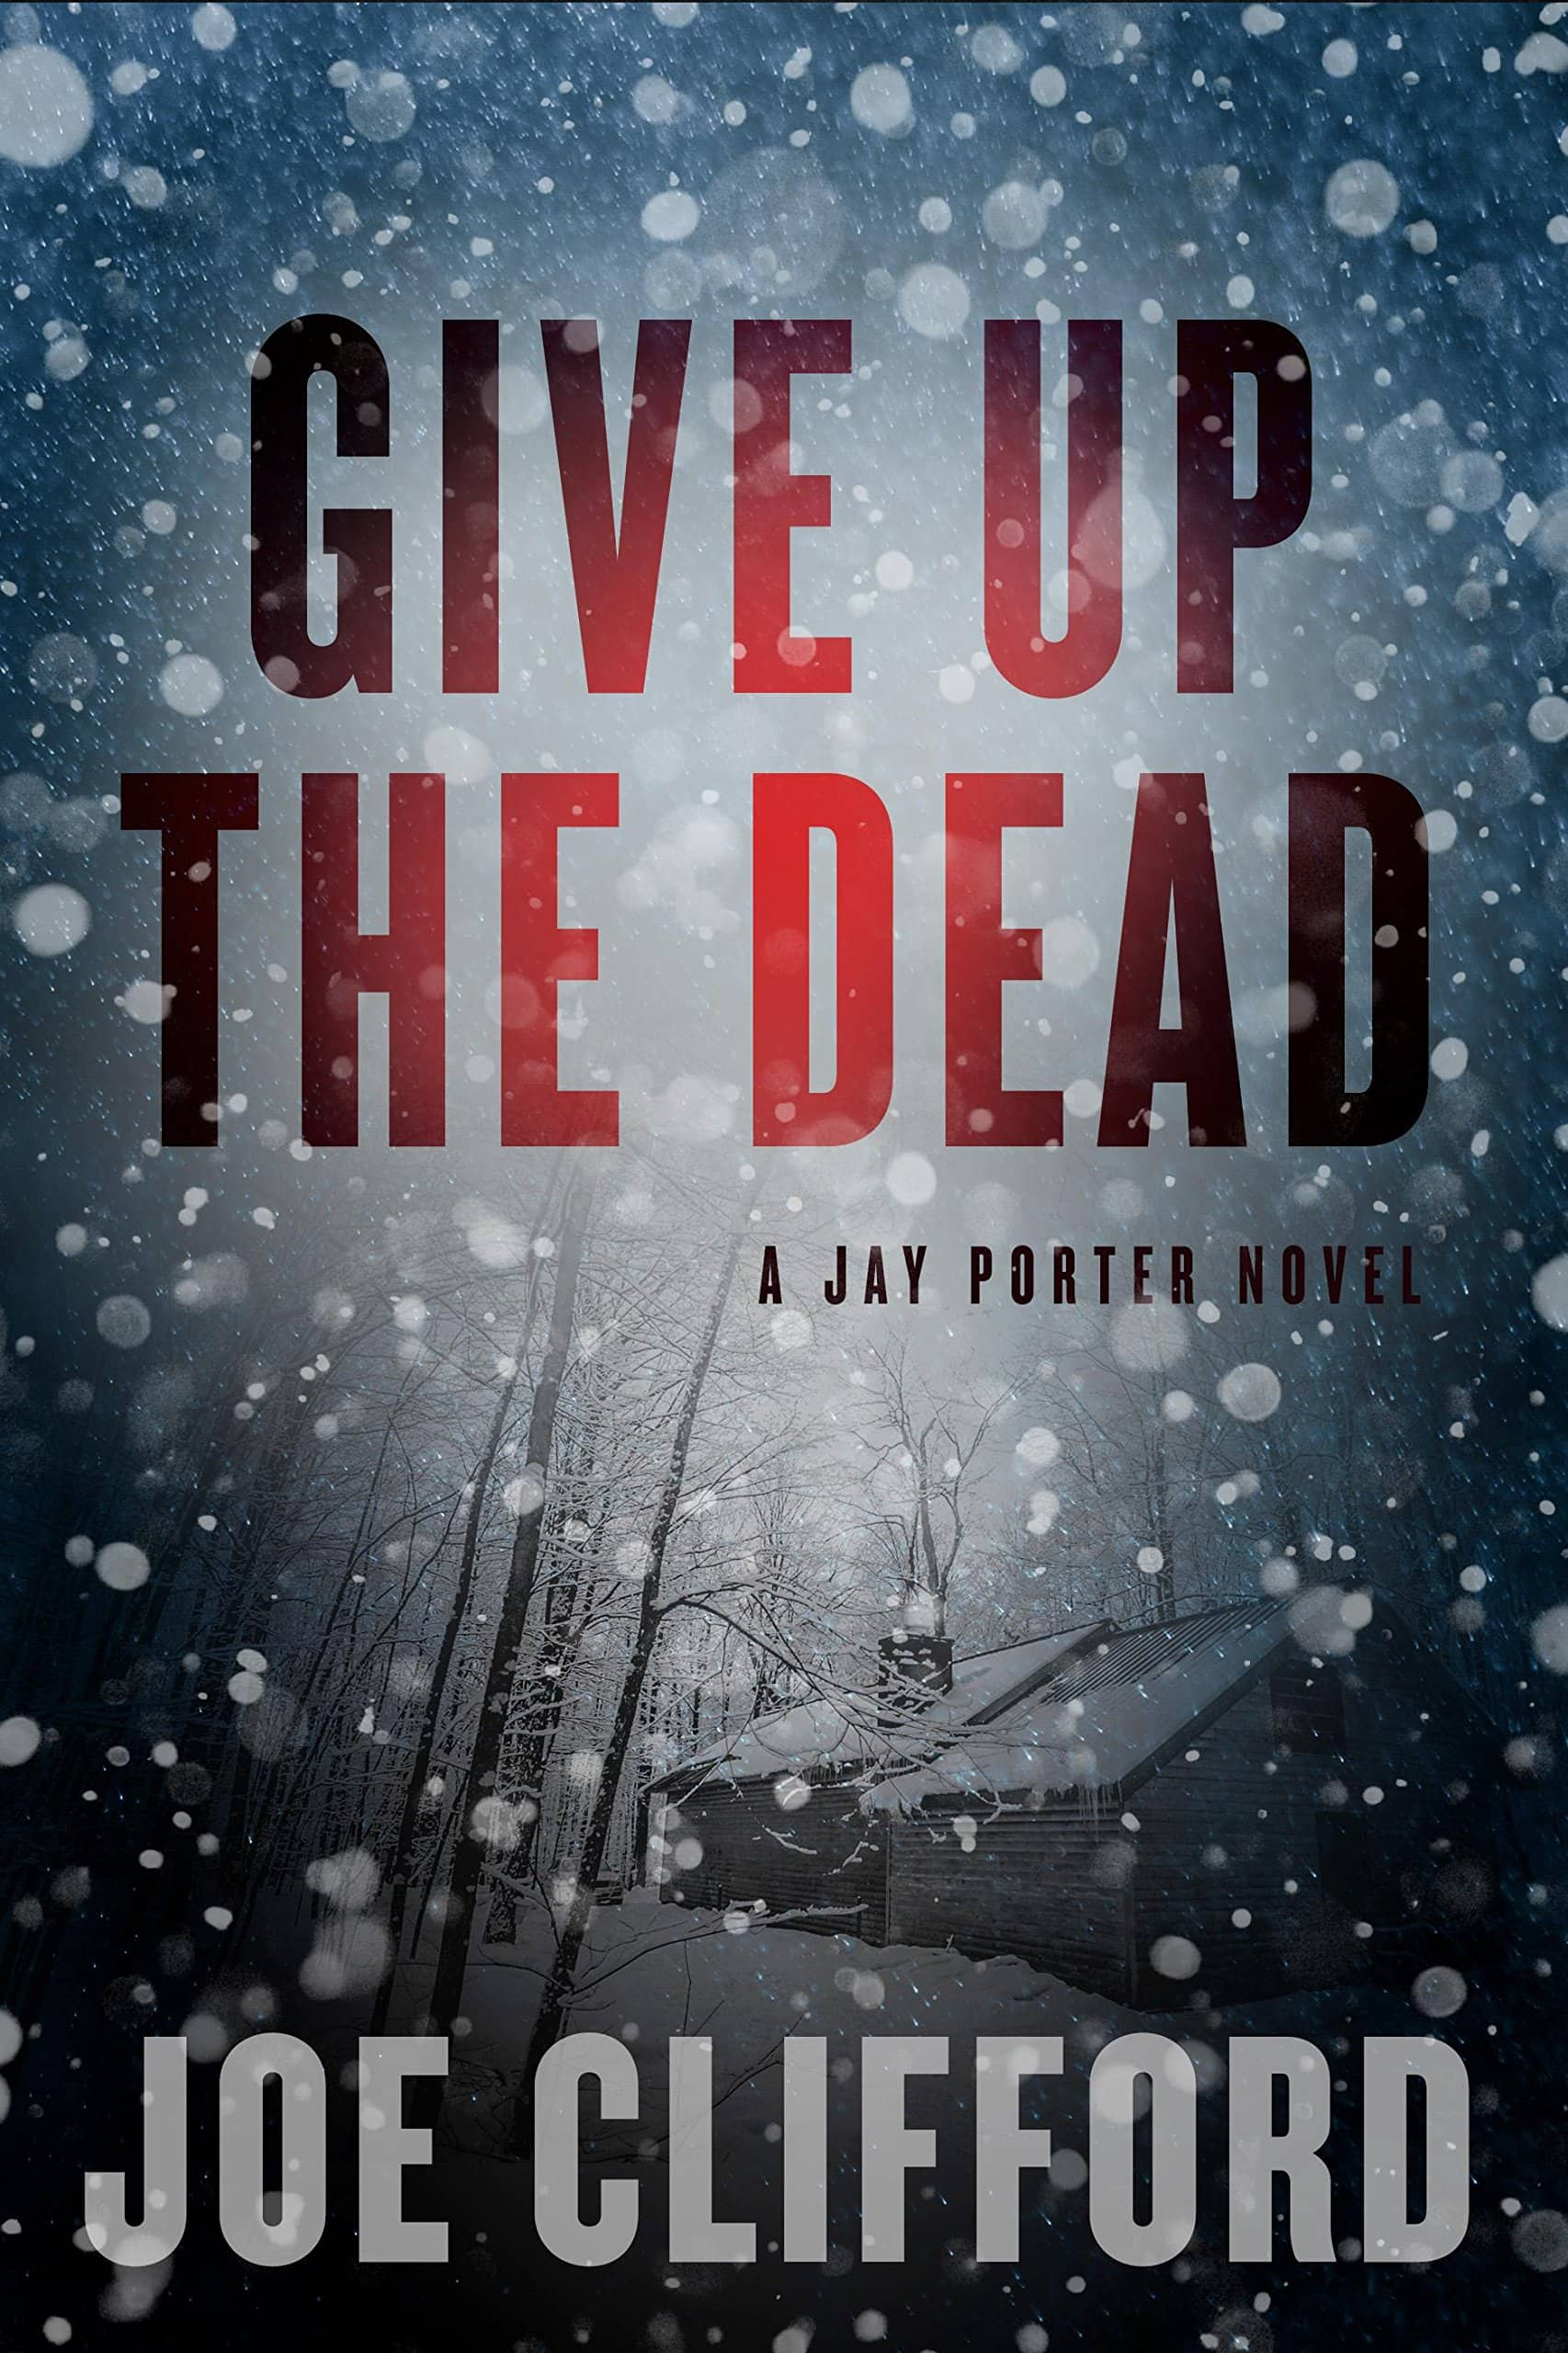 Mystery: Give Up the Dead (The Jay Porter Series) Hardcover Book 84% off + Free Ship with Prime $4.28